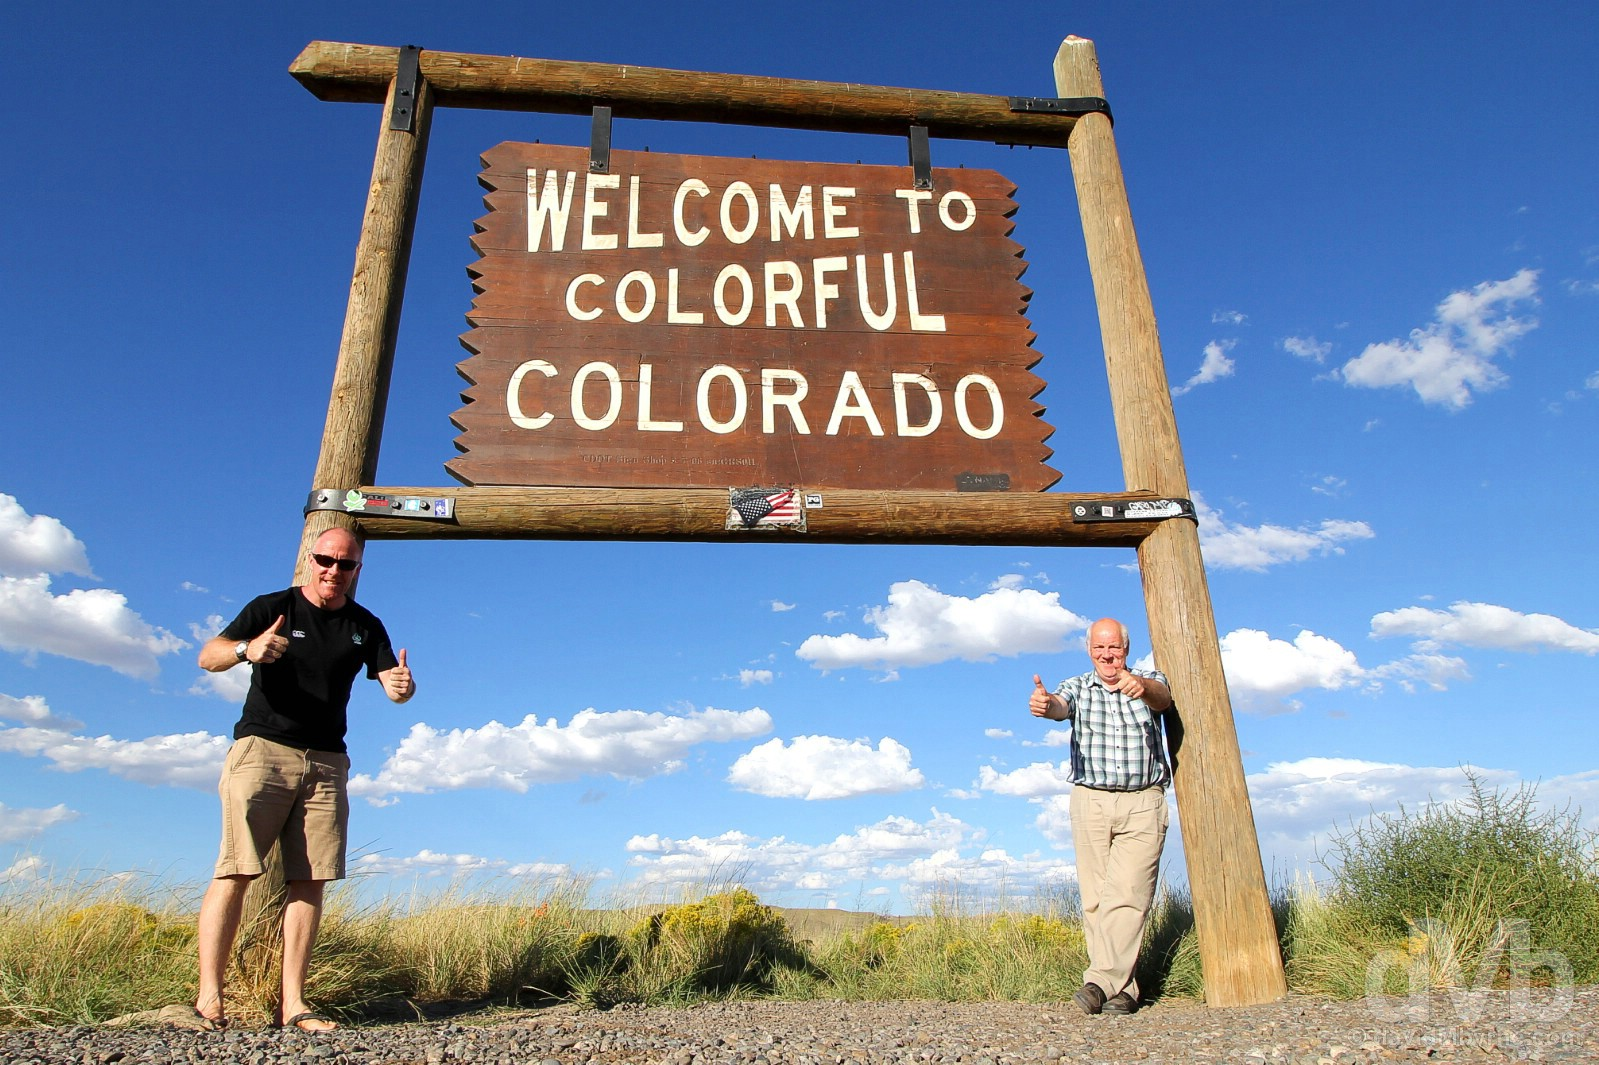 Welcome to Colorful Colorado. At the New Mexico/Colorado state line on US Route 160. September 11, 2016.